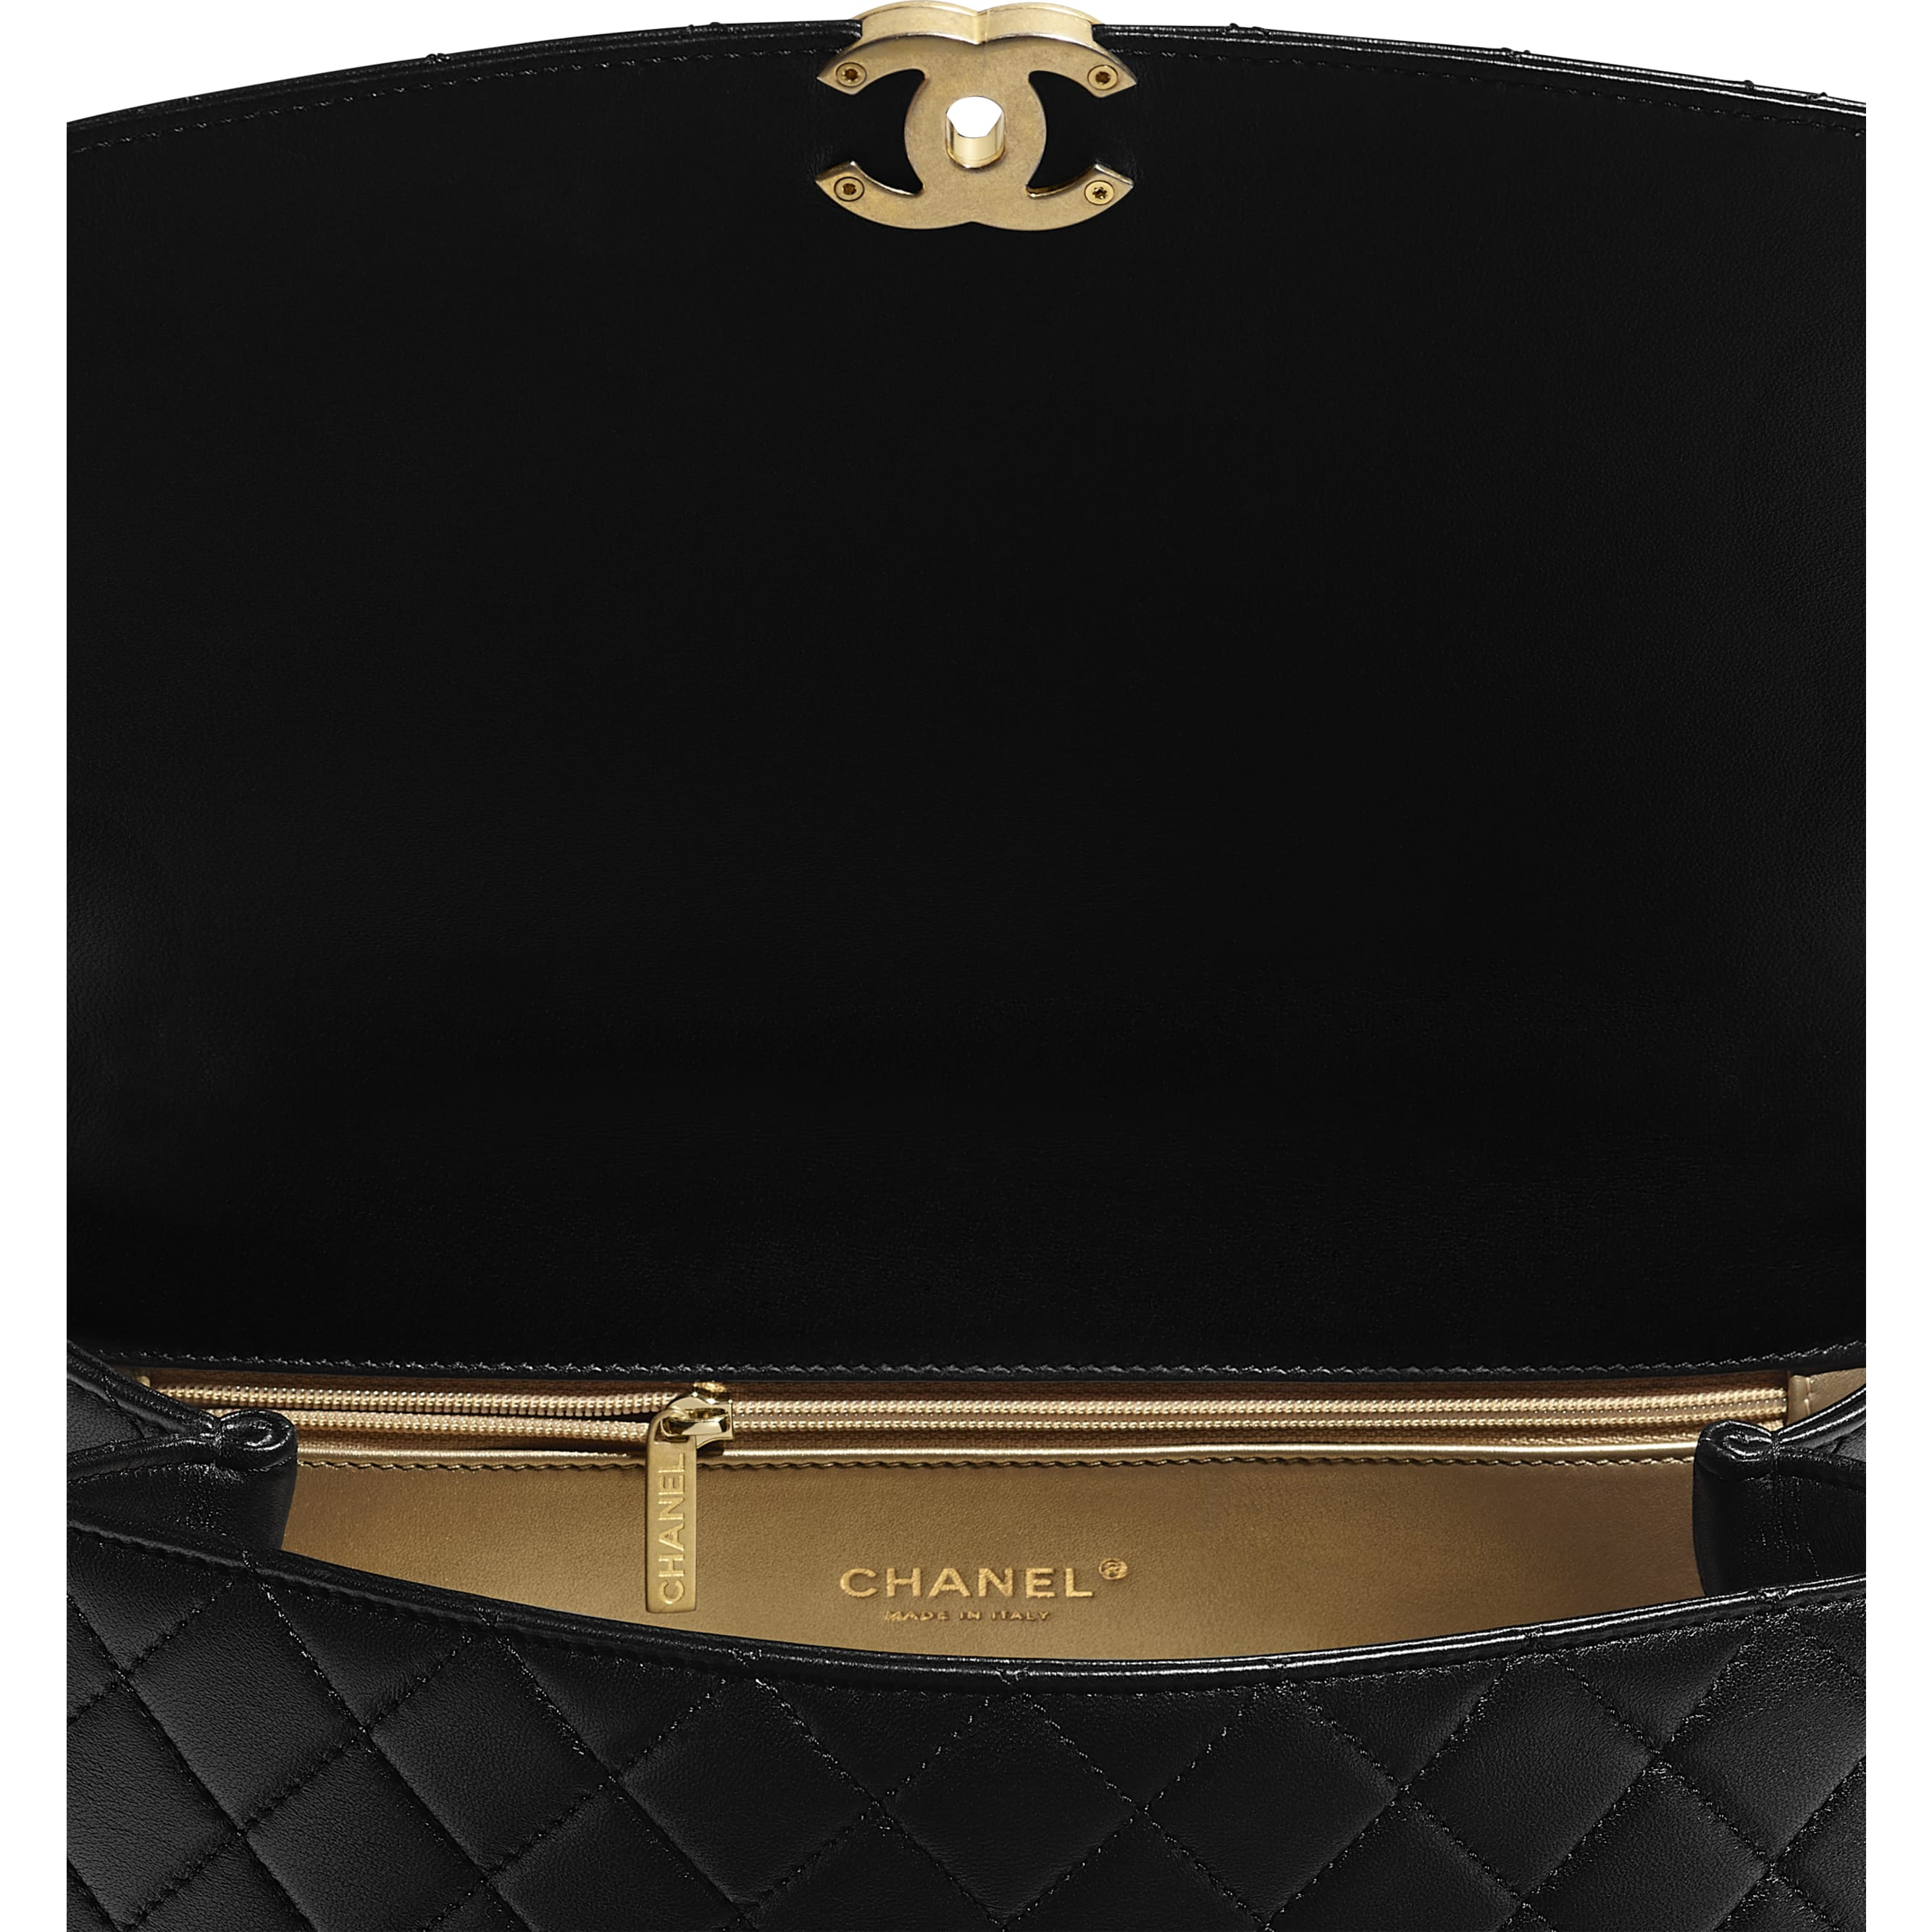 Large Flap Bag With Top Handle - Black - Lambskin, Gold-Tone & Ruthenium-Finish Metal - CHANEL - Extra view - see standard sized version